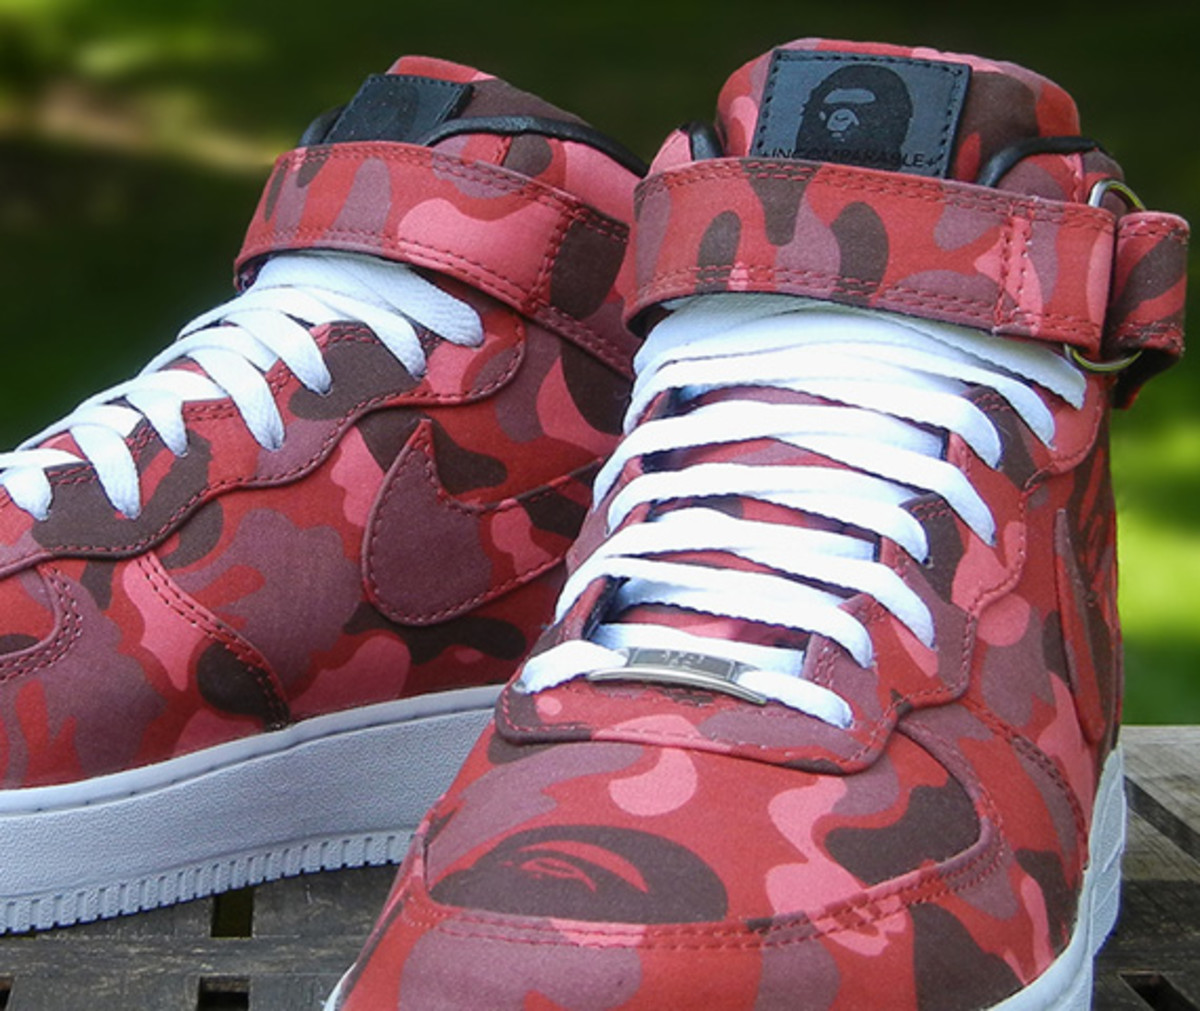 nike-air-force-1-bape-1st-camo-incomparable-custom-by-jbf-customs-02